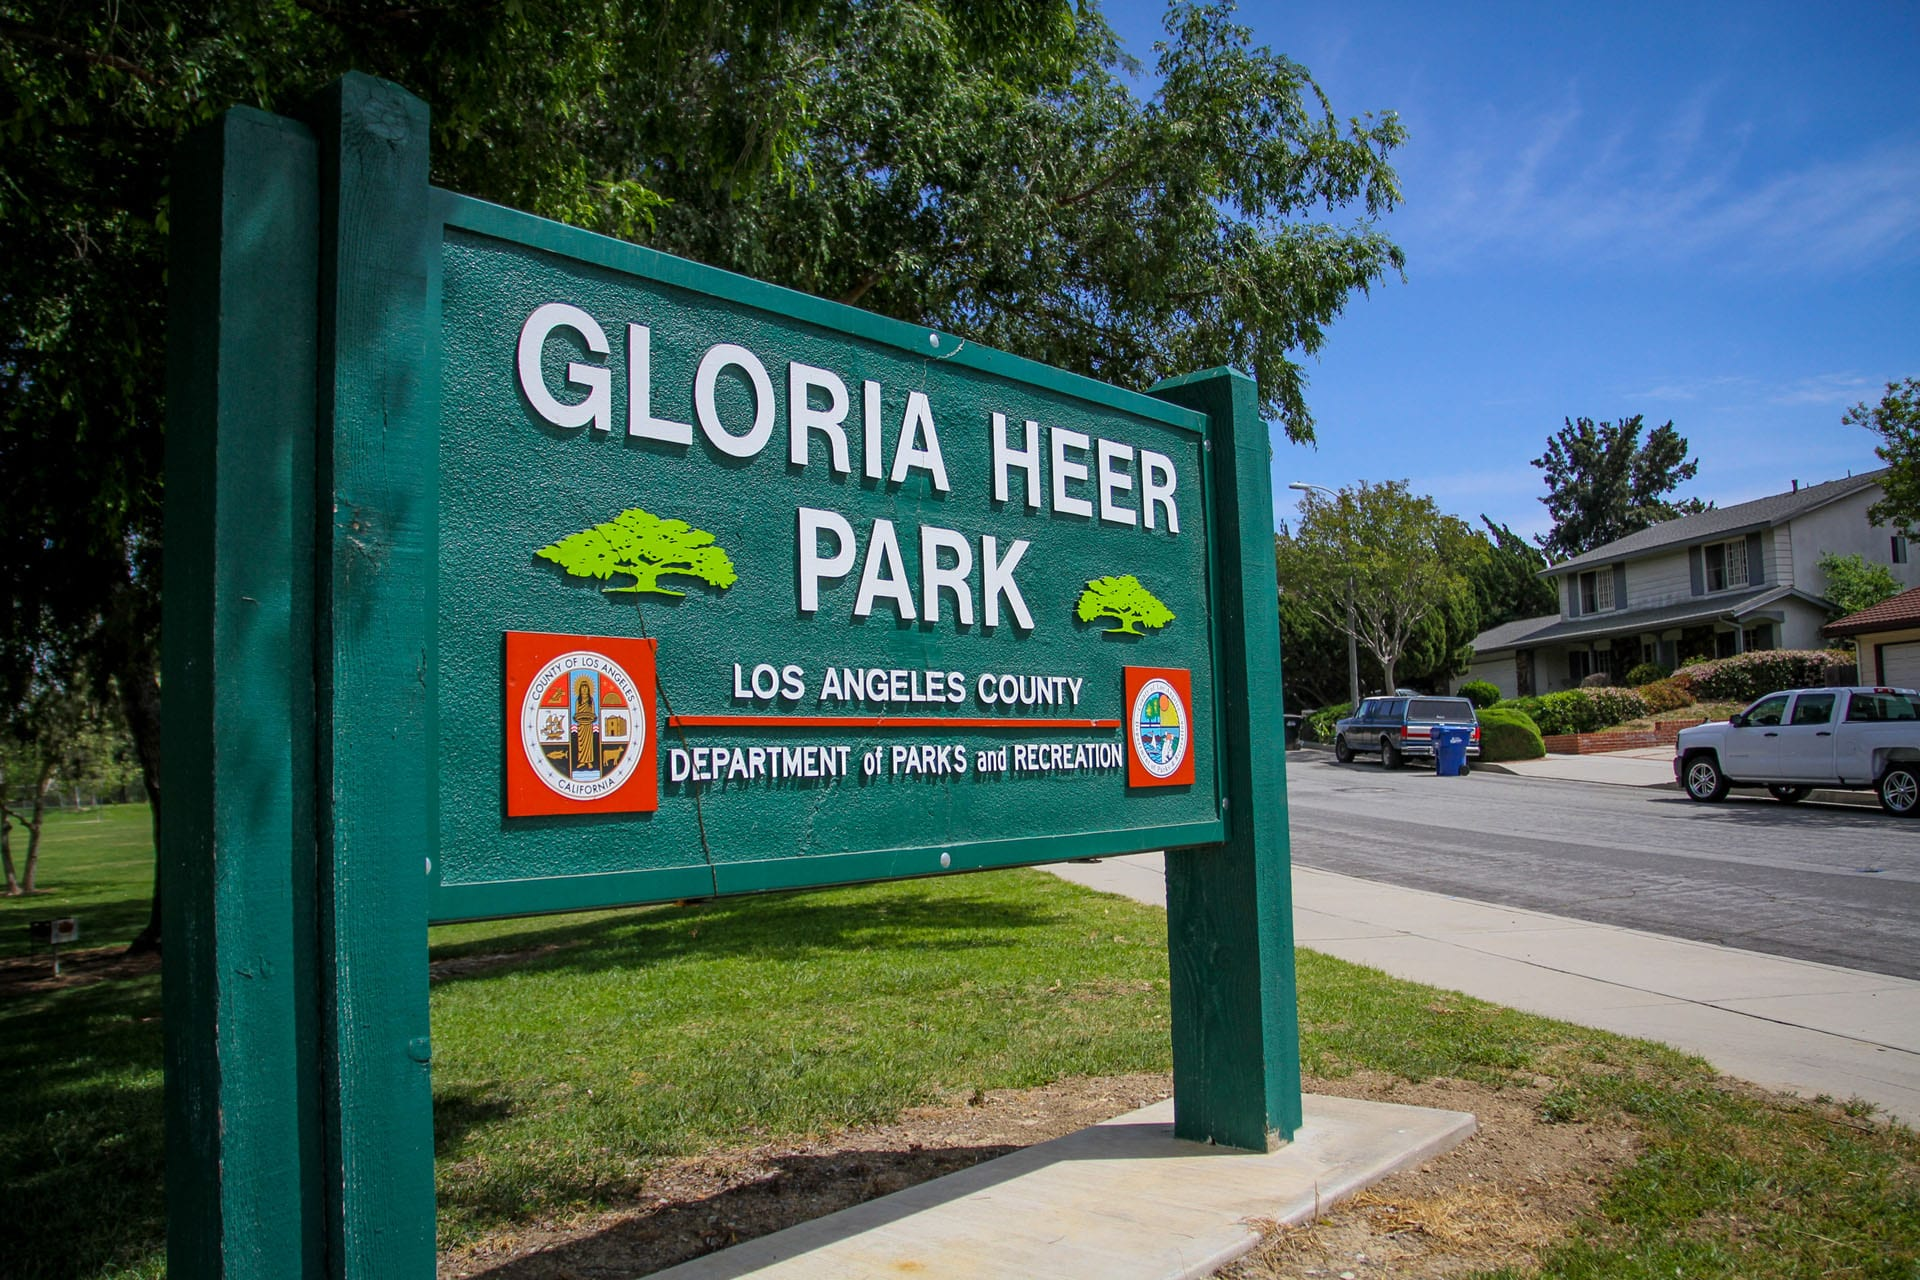 Gloria Heer Park sign from left